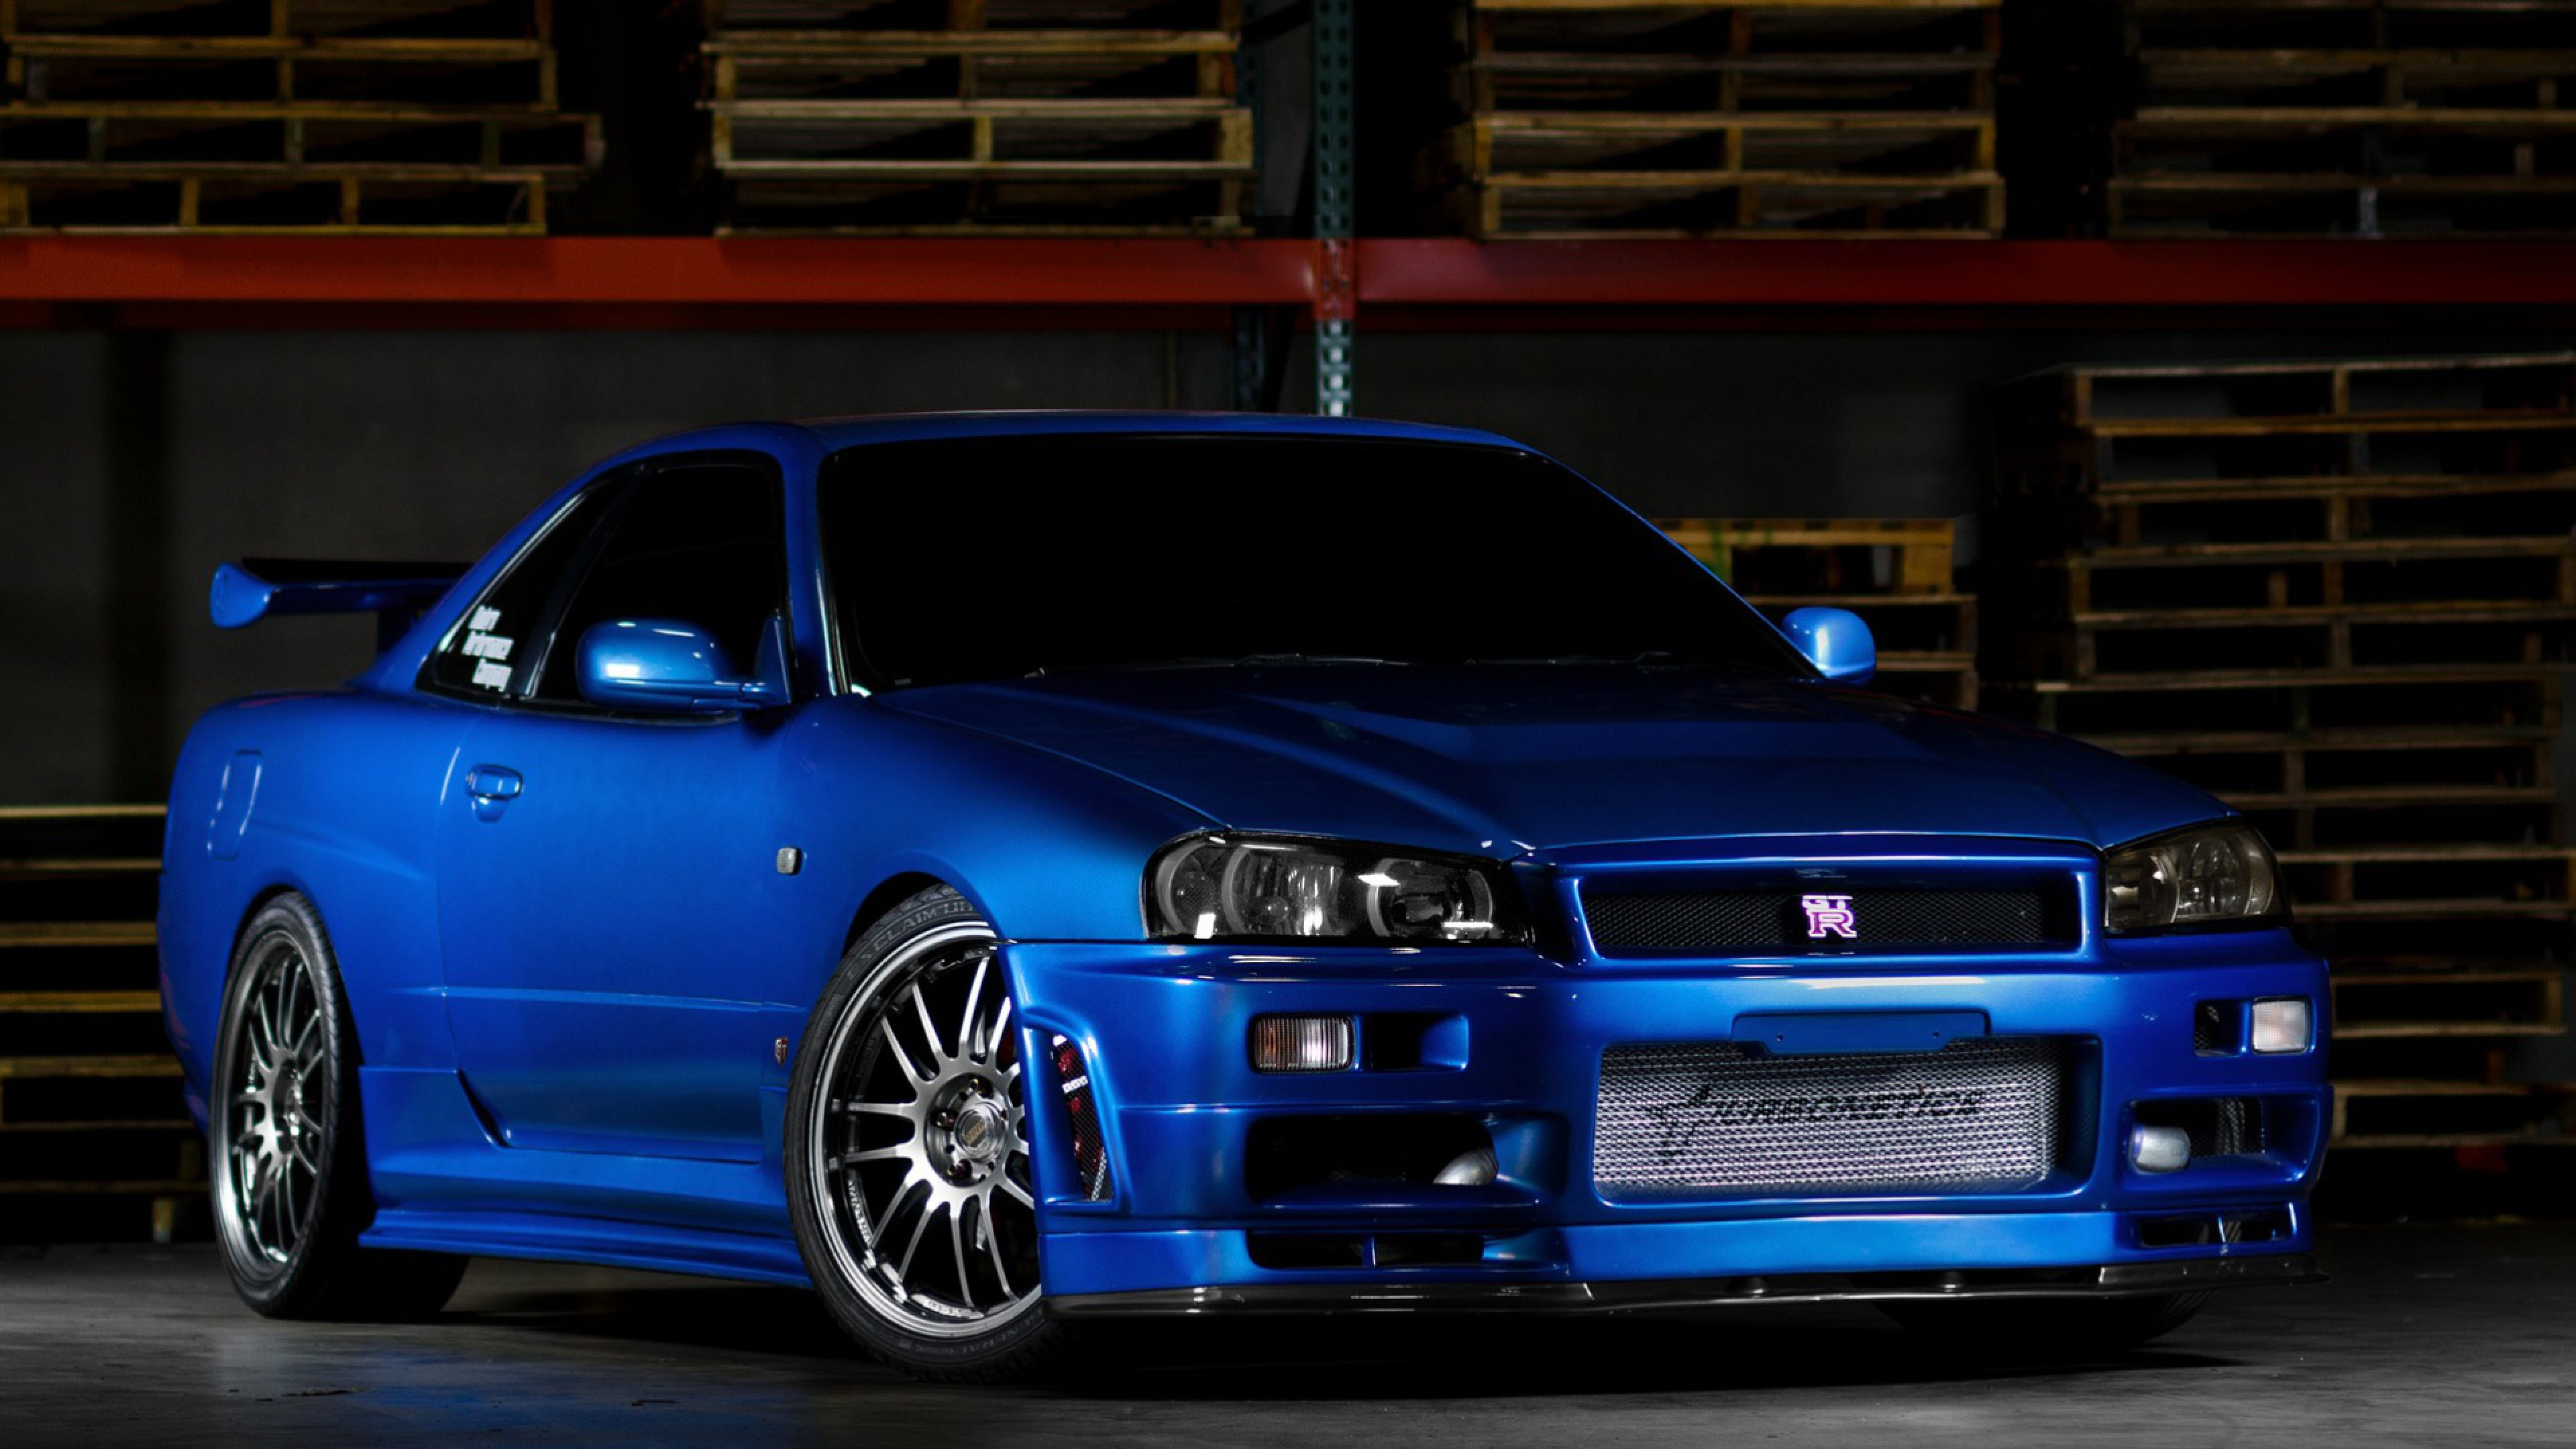 Nissan Skyline R34 Wallpaper Wallpapersafari